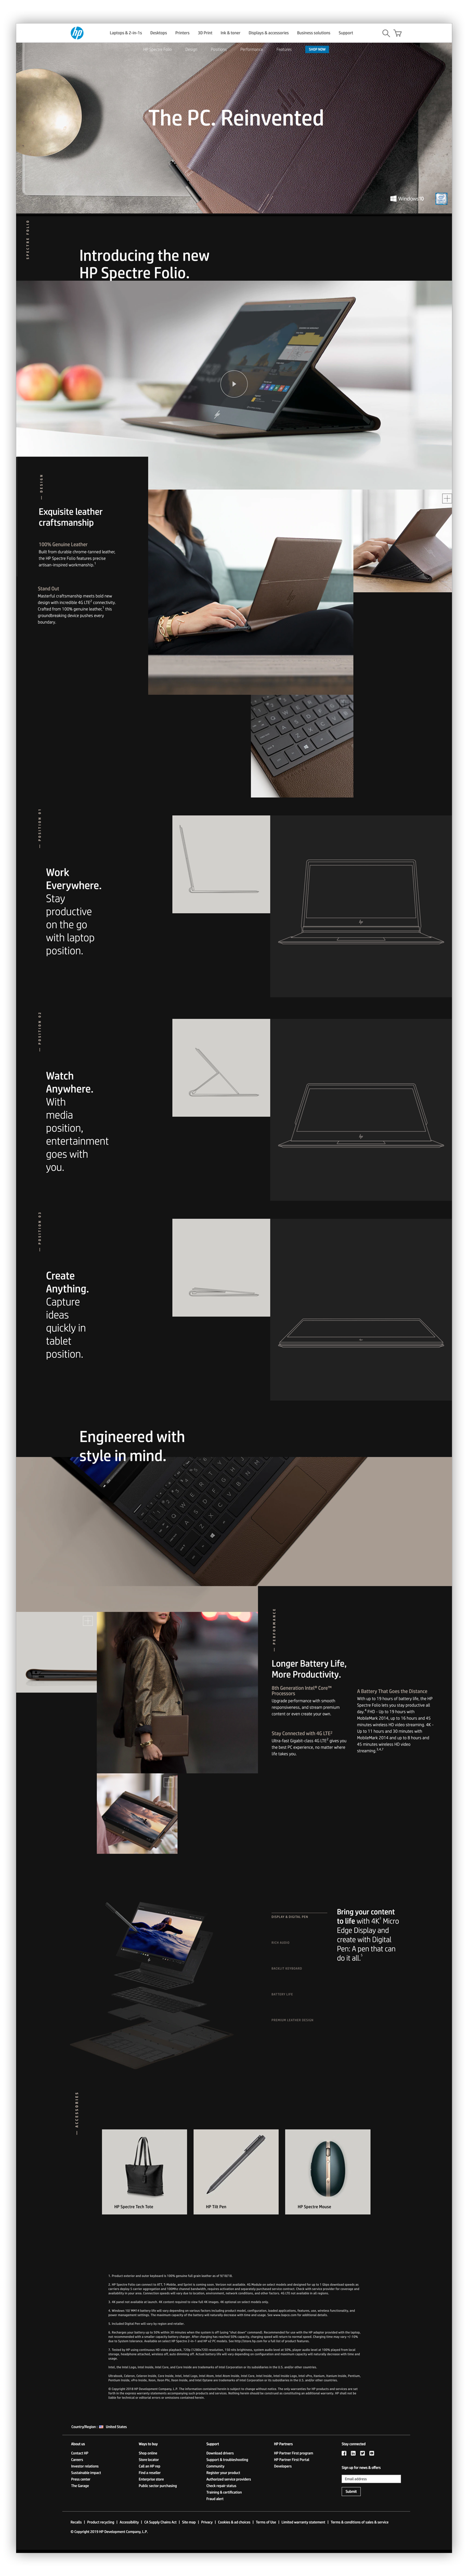 SpectreFolio_page_1.png